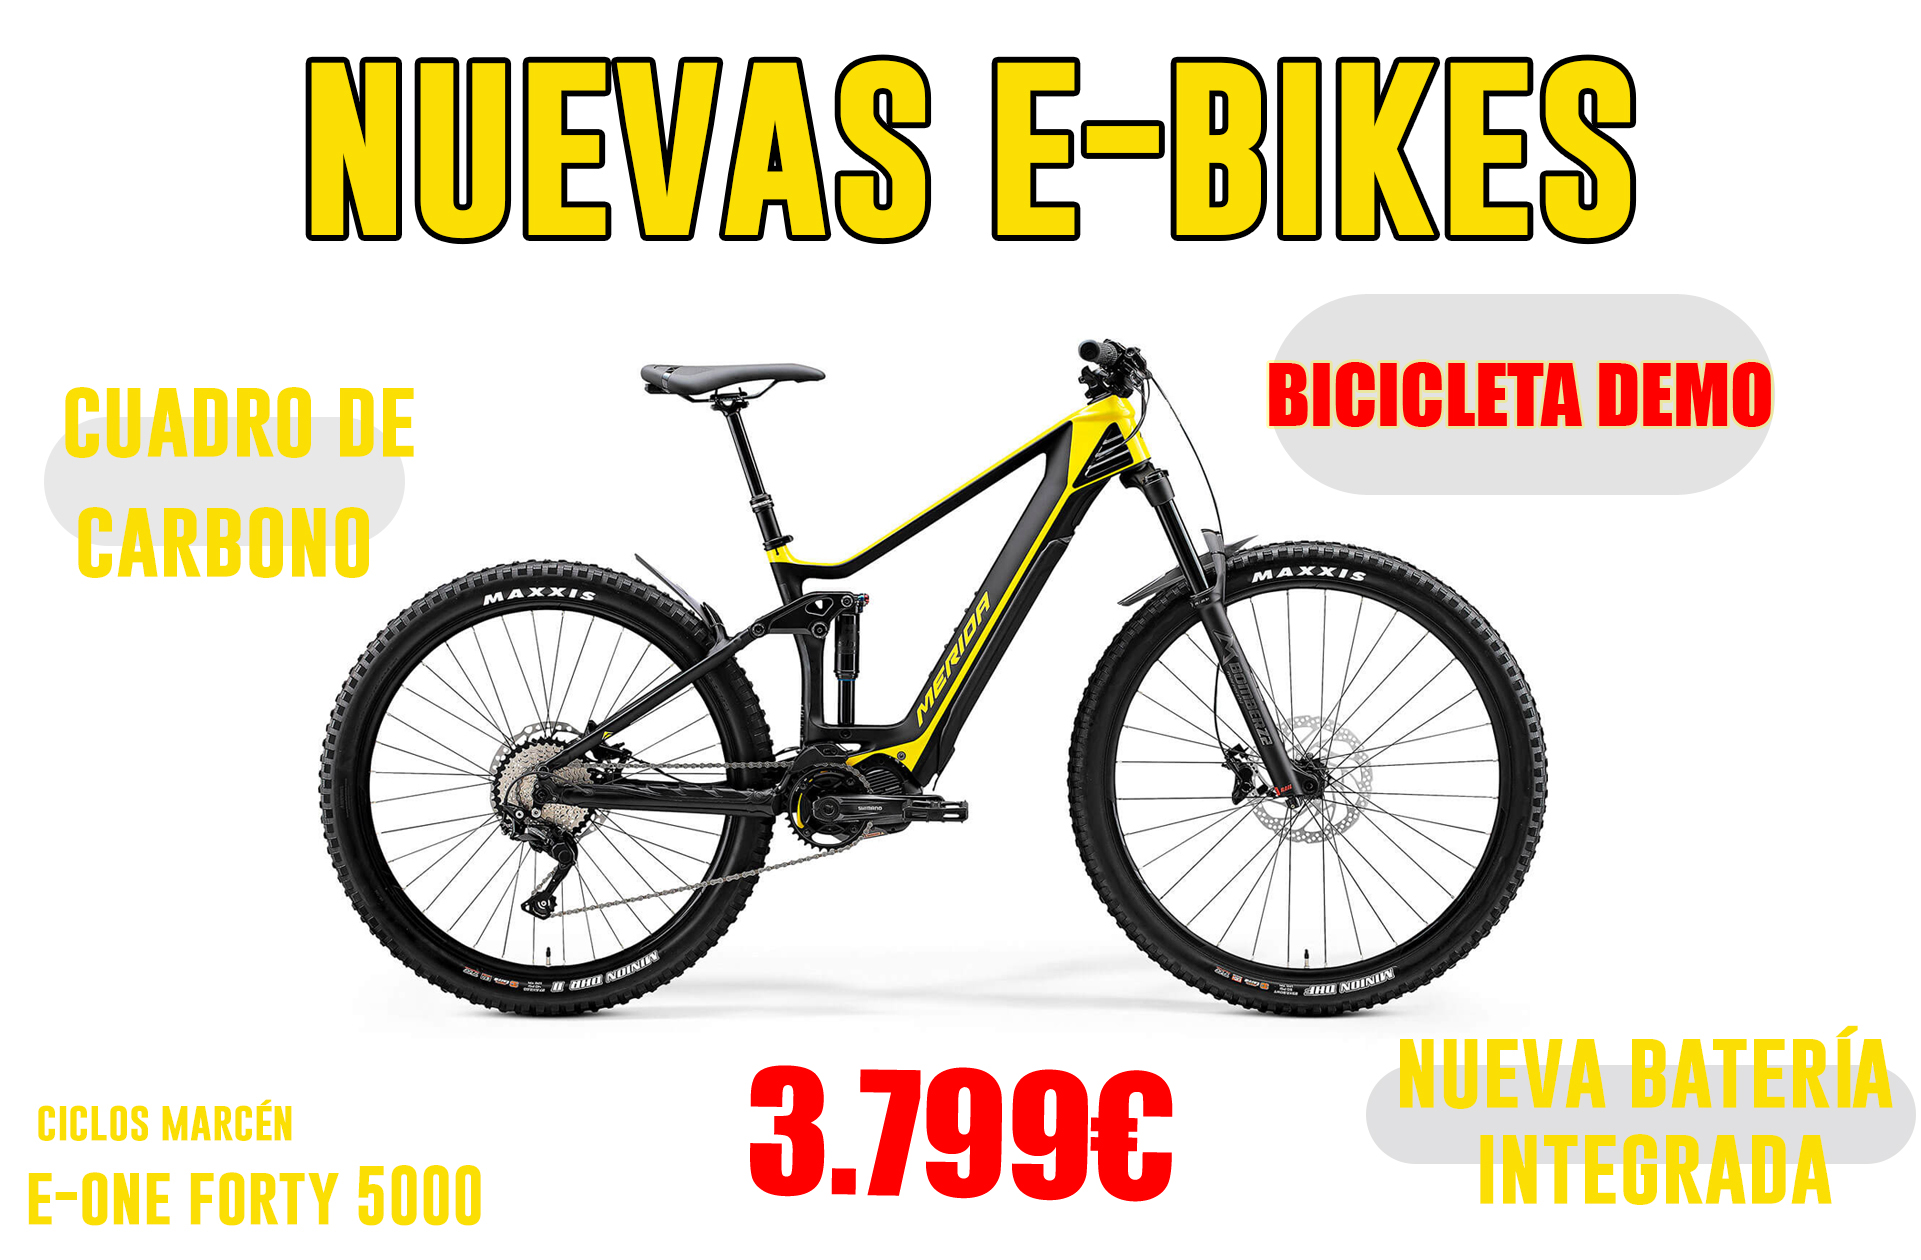 eoneforty5000_ciclosmarcen2.jpg